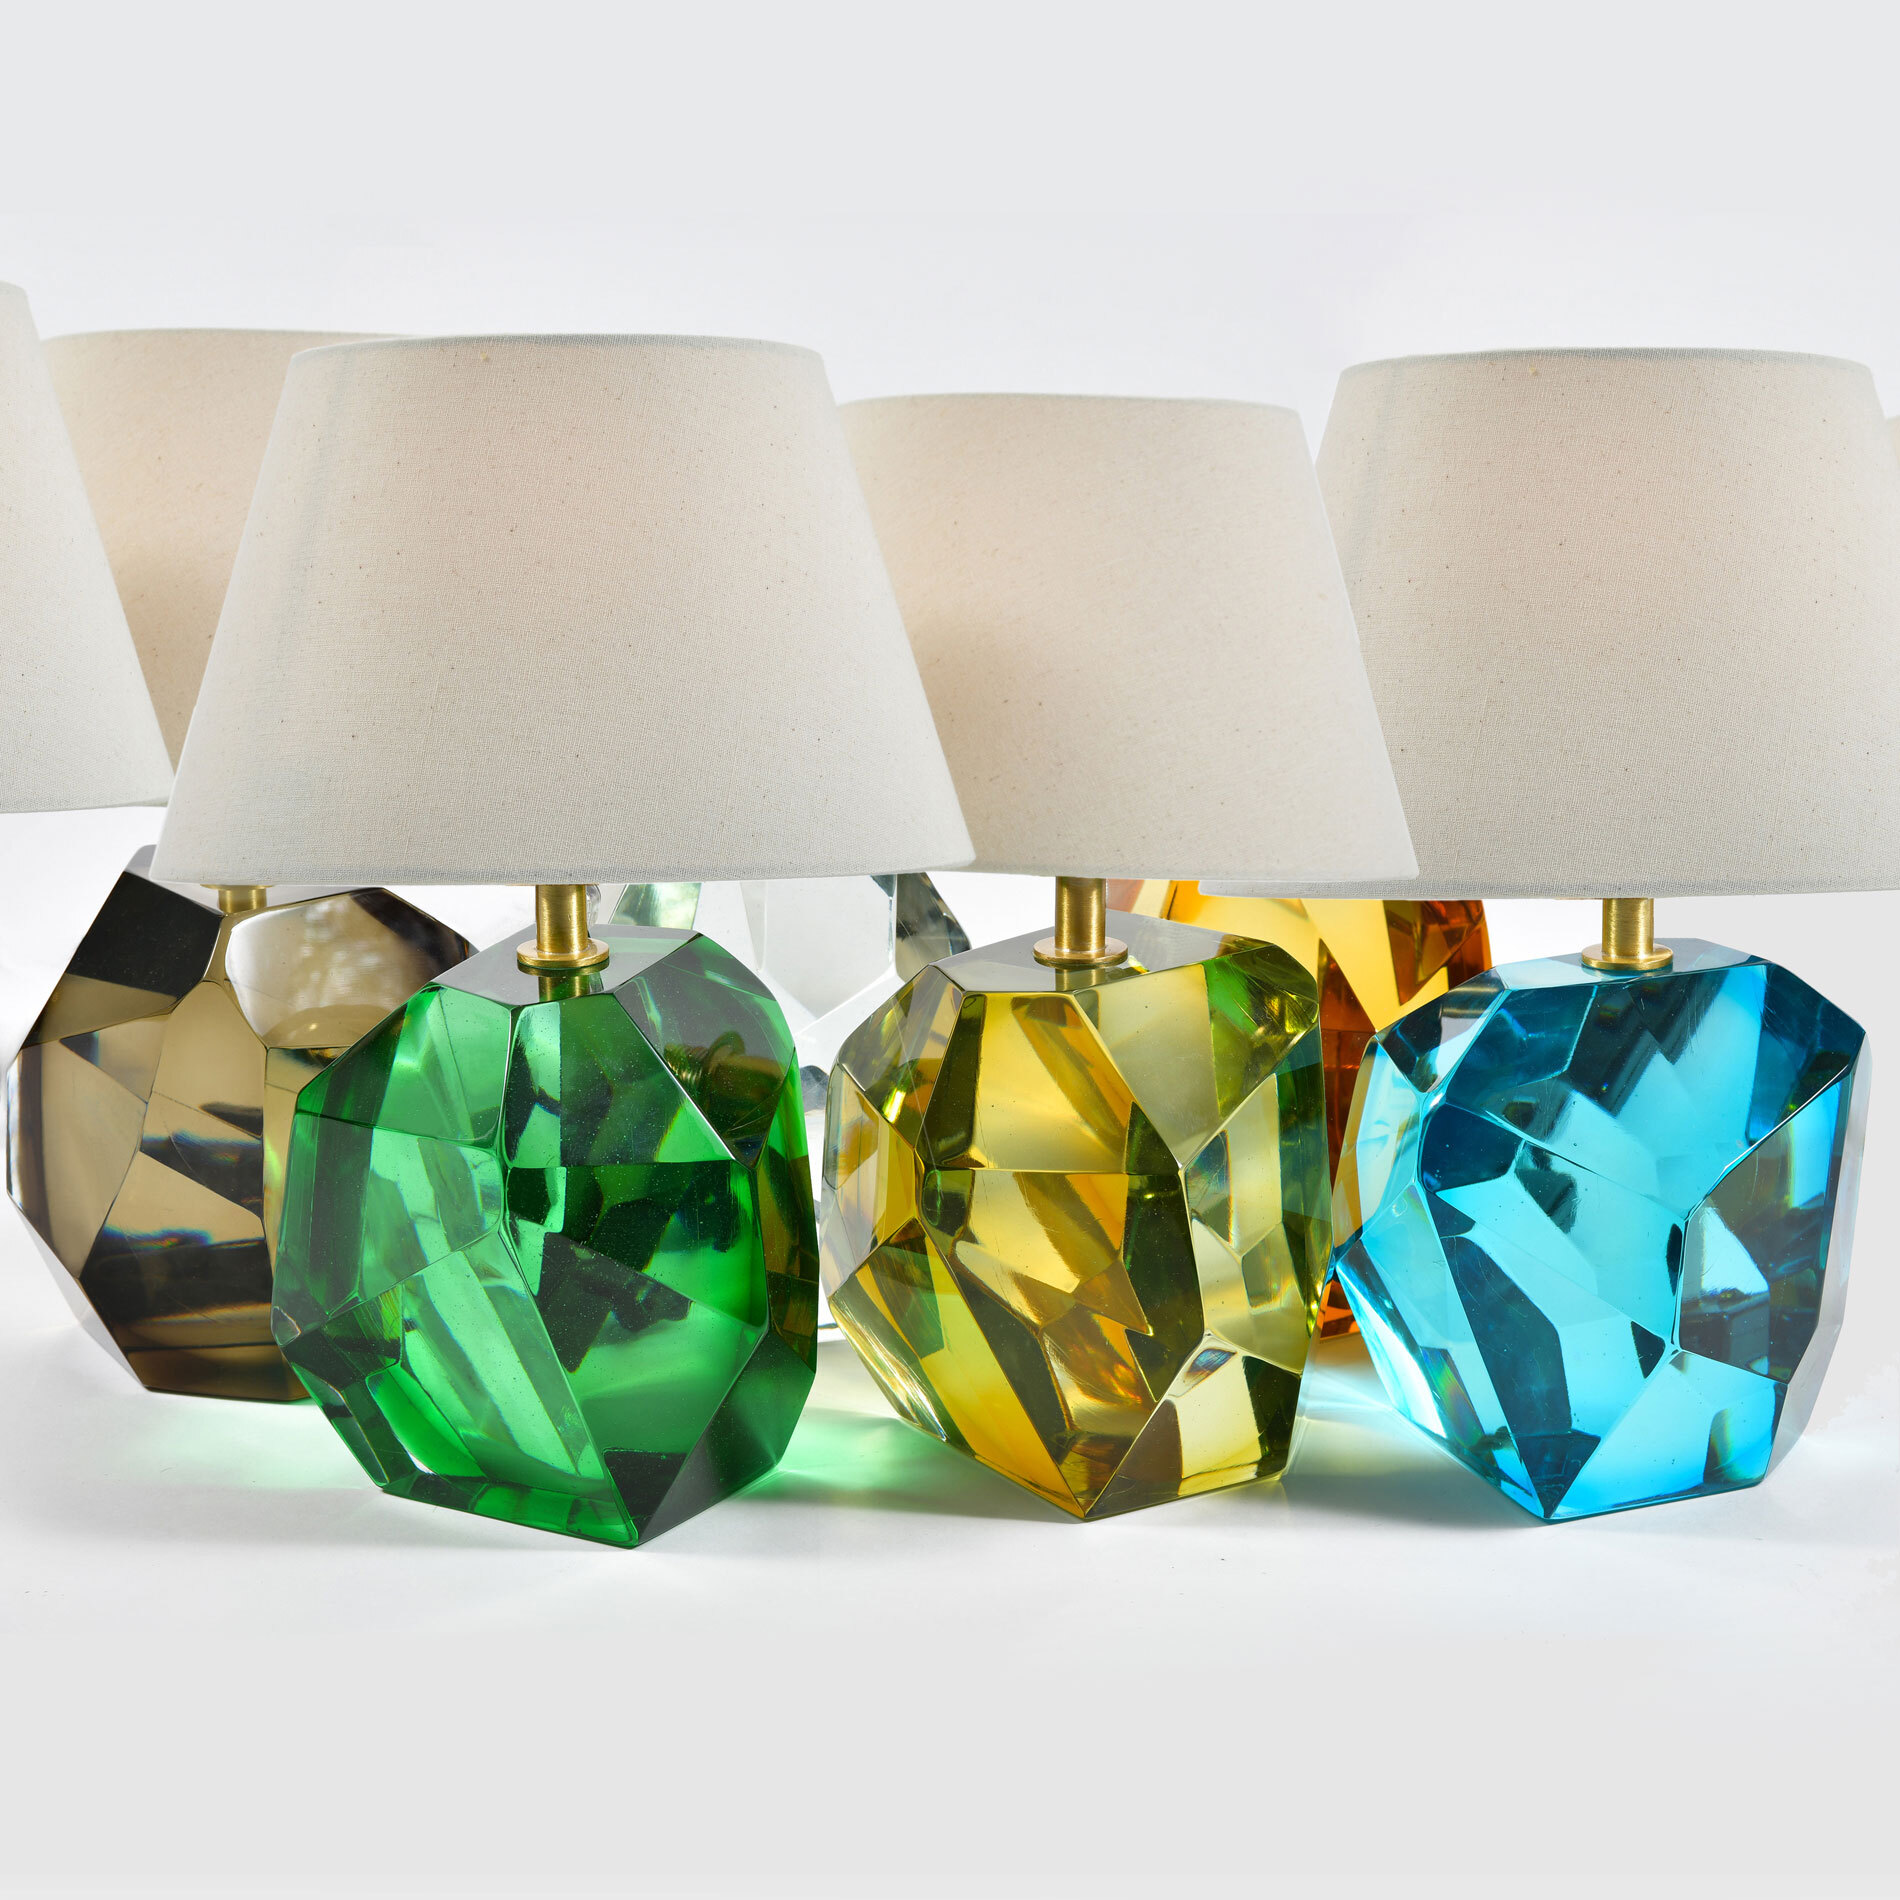 Variety Of Rock Lamps 01